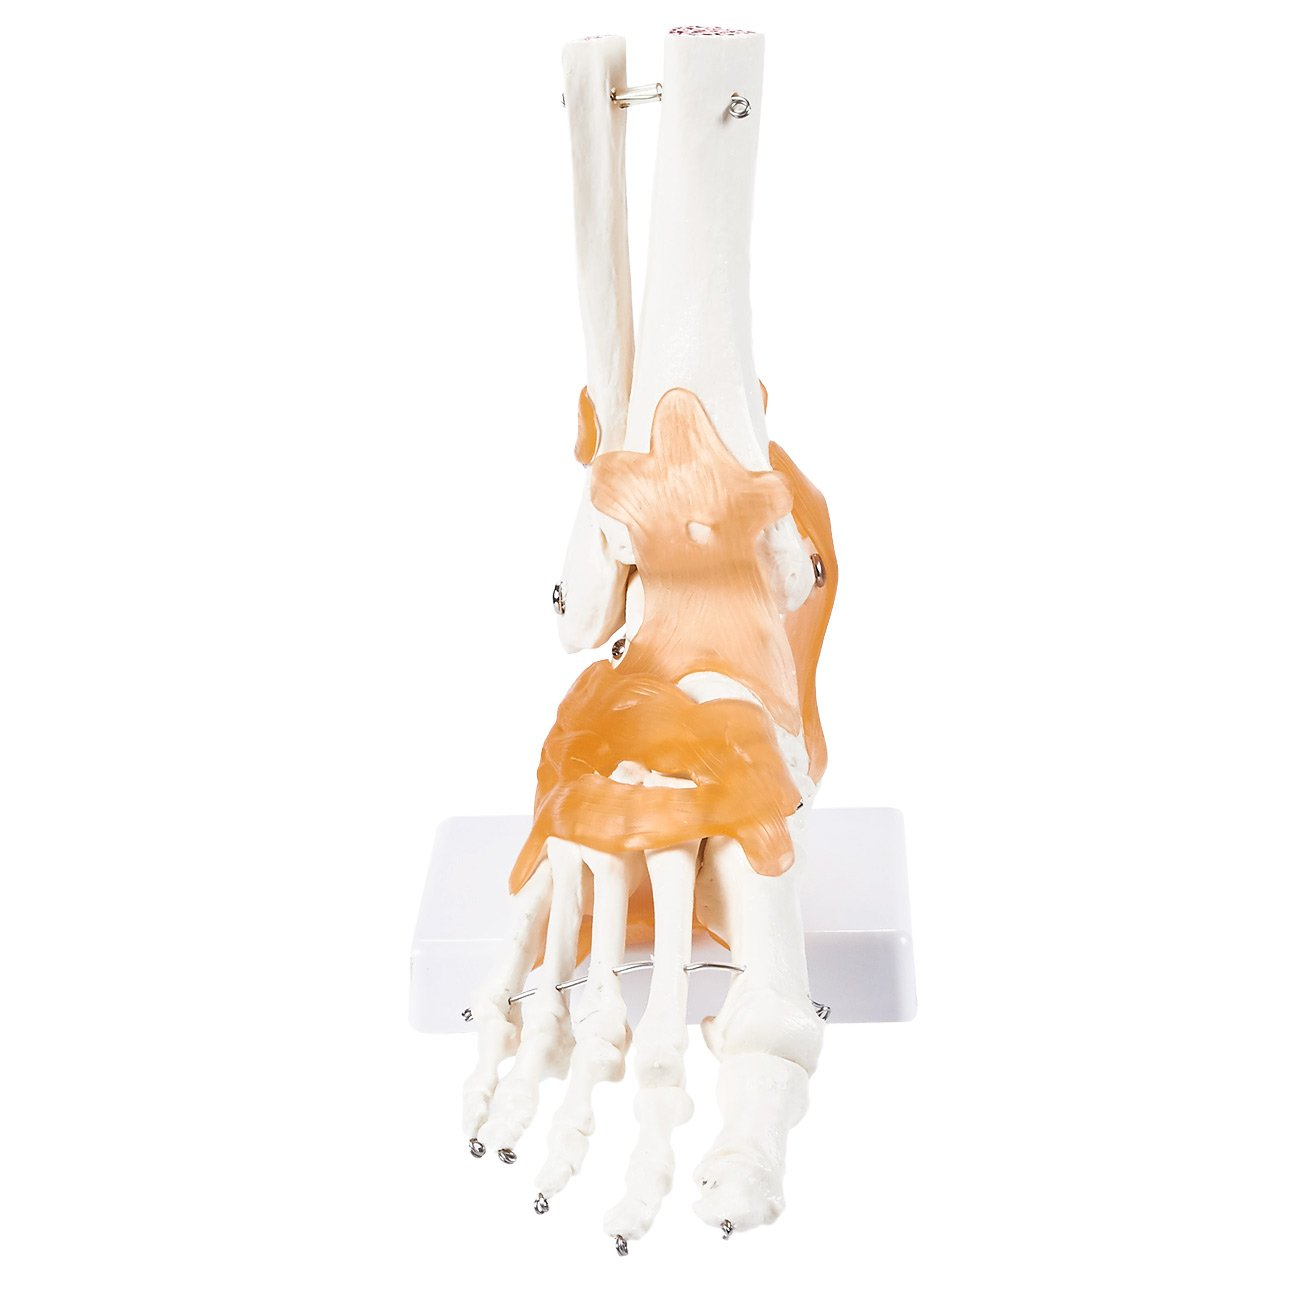 Human Ankle Model Foot Anatomical Model With Ligaments For Science